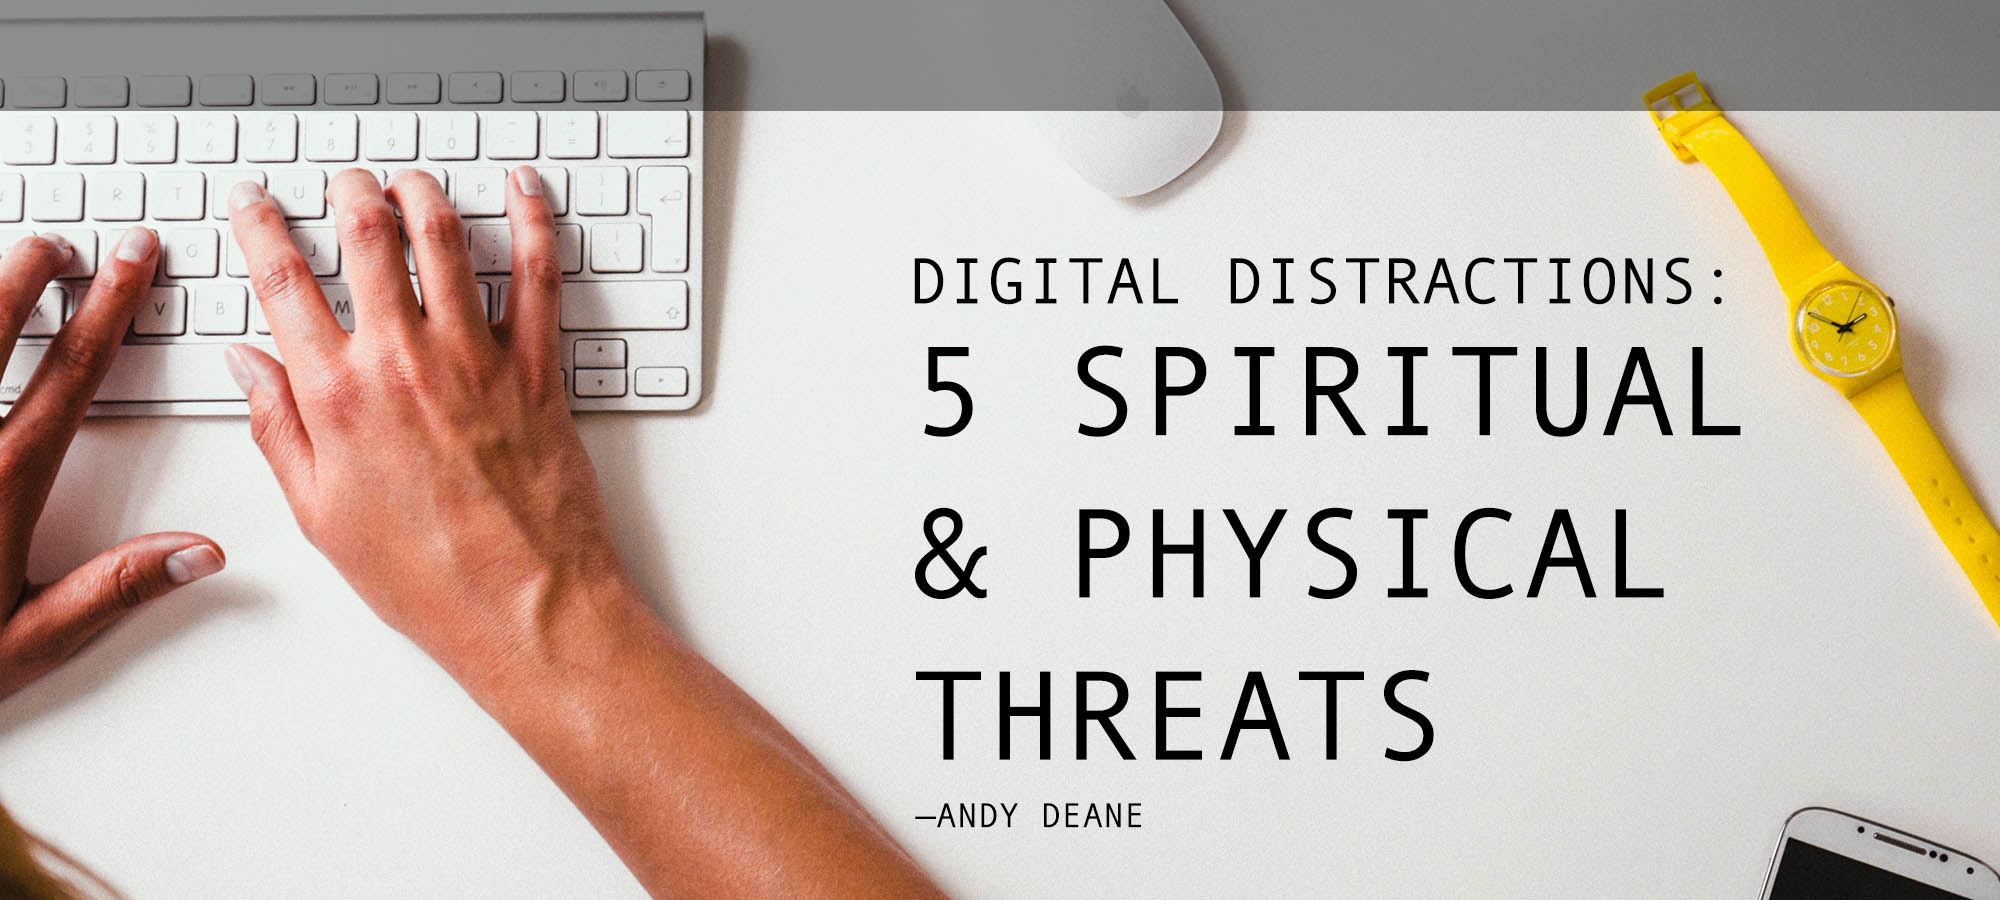 Digital-Distractions-Five-Spiritual-Physical-Threats.jpg